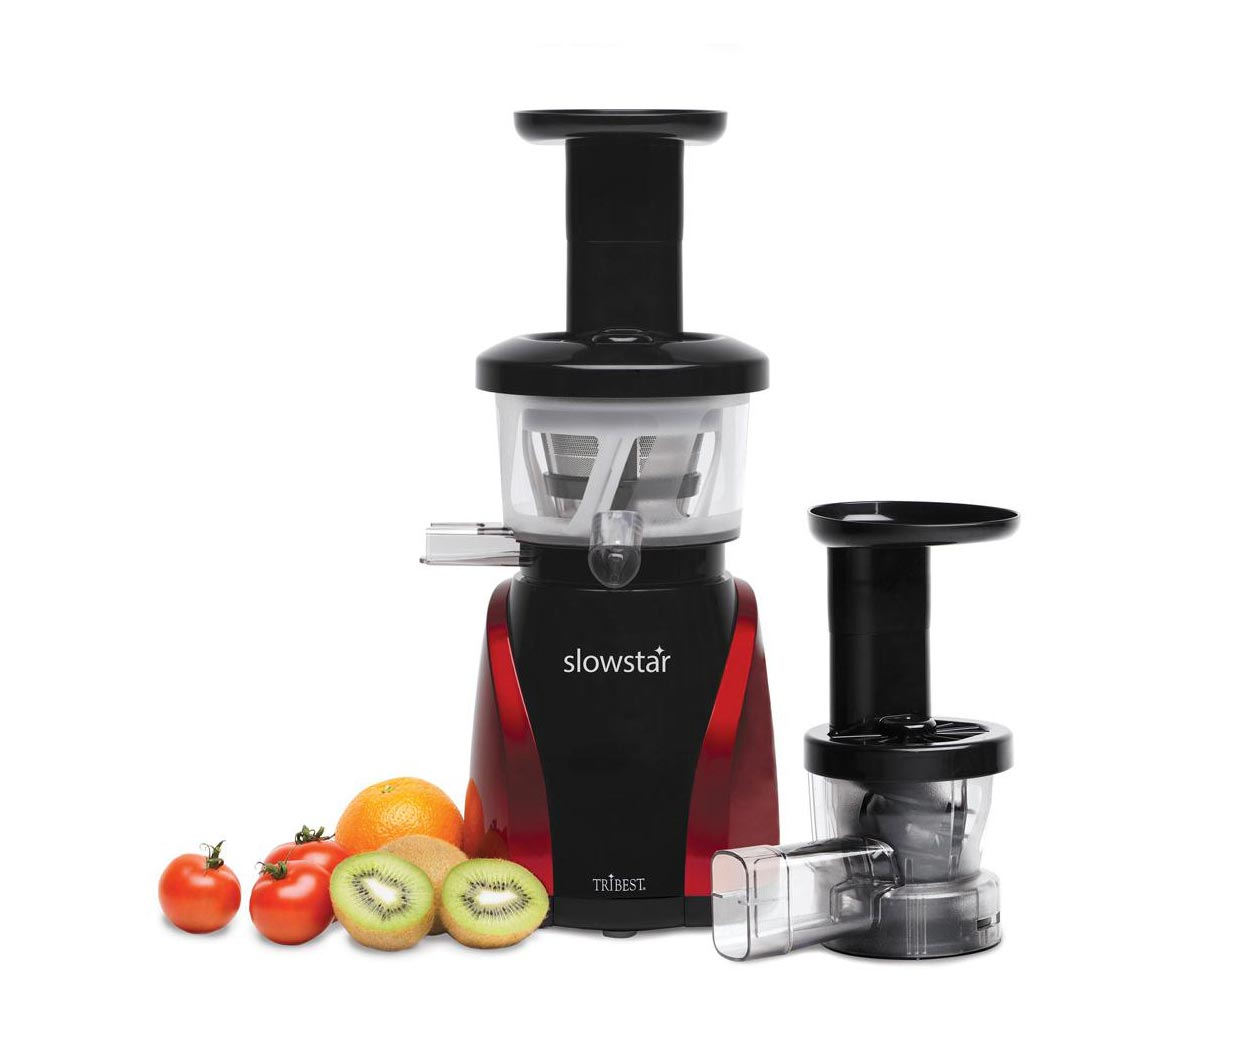 Tribest Slowstar Slow Juicer Sw 2000 Test : Tribest Slowstar Juicer Review. Is this Tribest juicer the best juicer to buy?